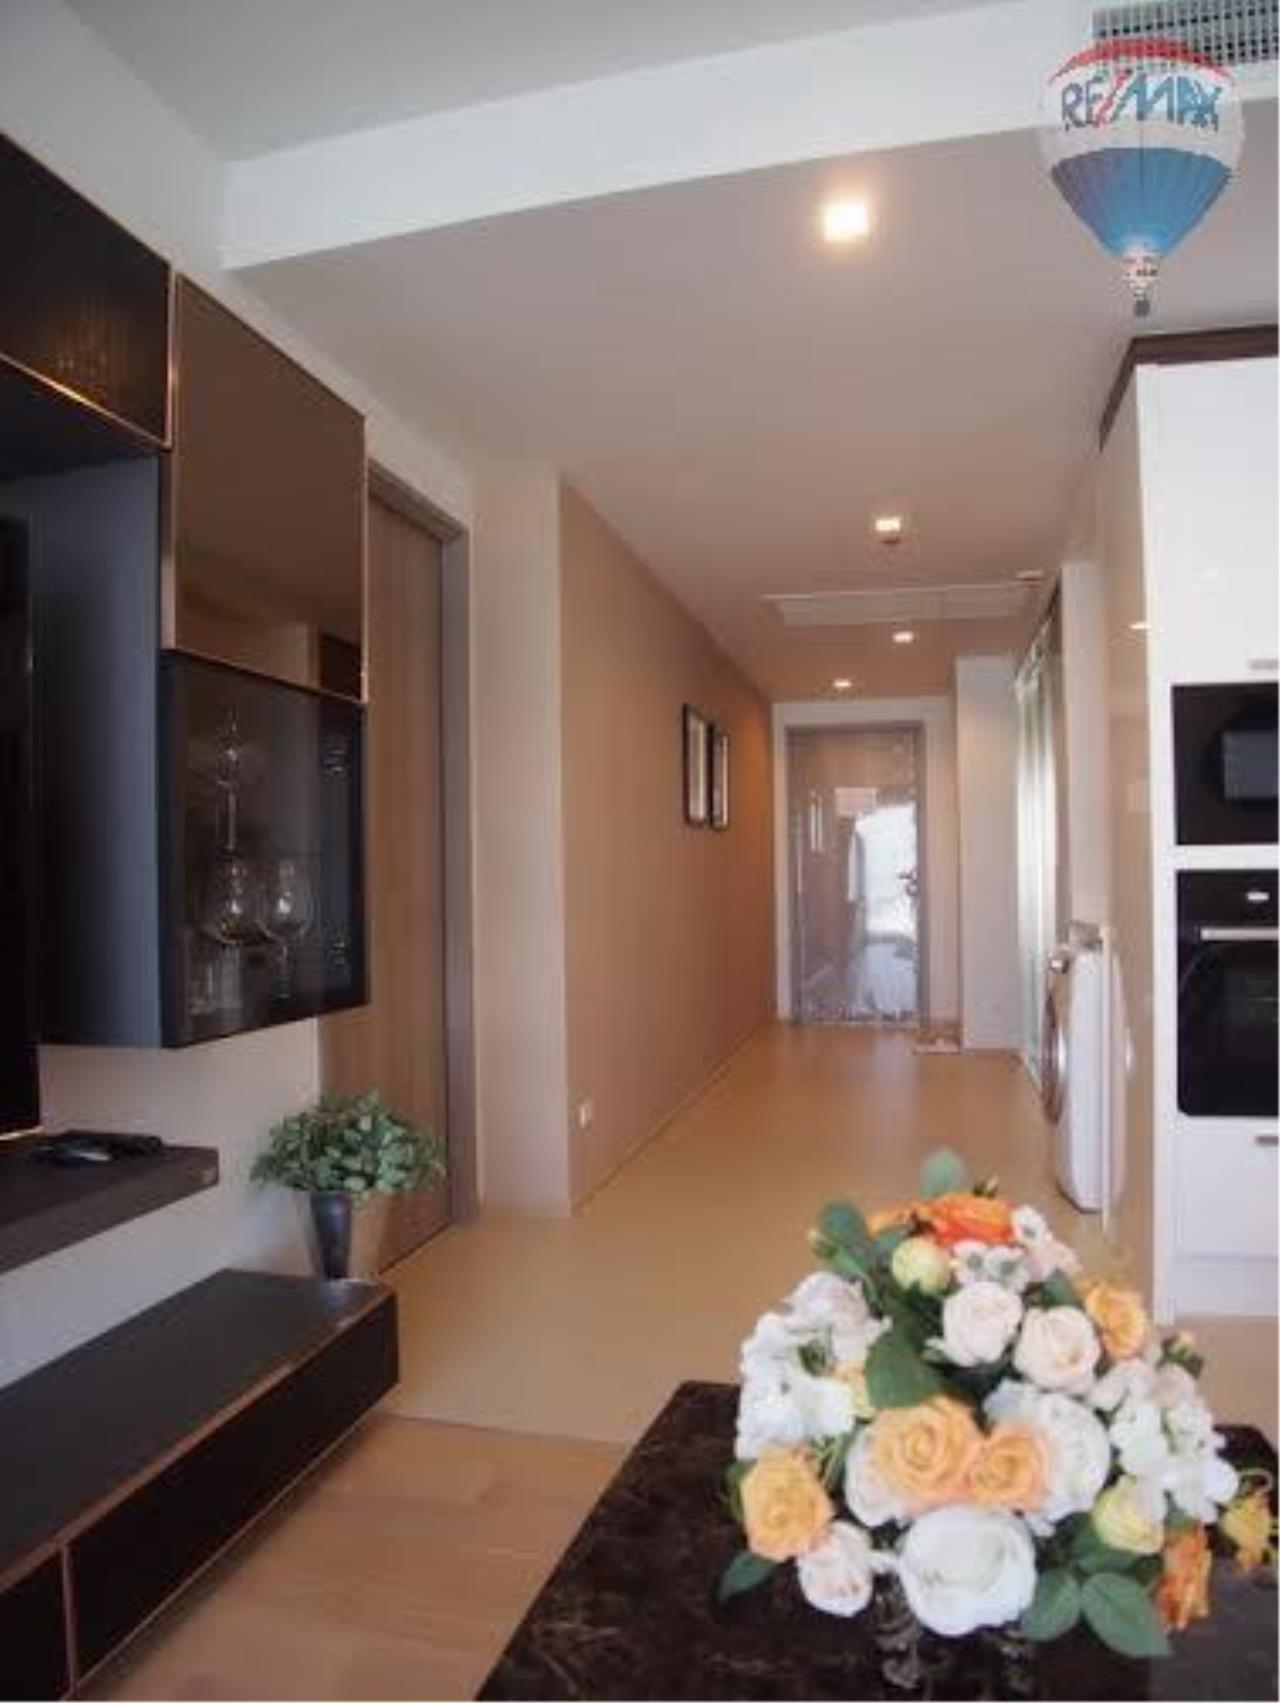 RE/MAX Properties Agency's 2 Bedrooms 100 Sq.M. in HQ by Sansiri for sale 8